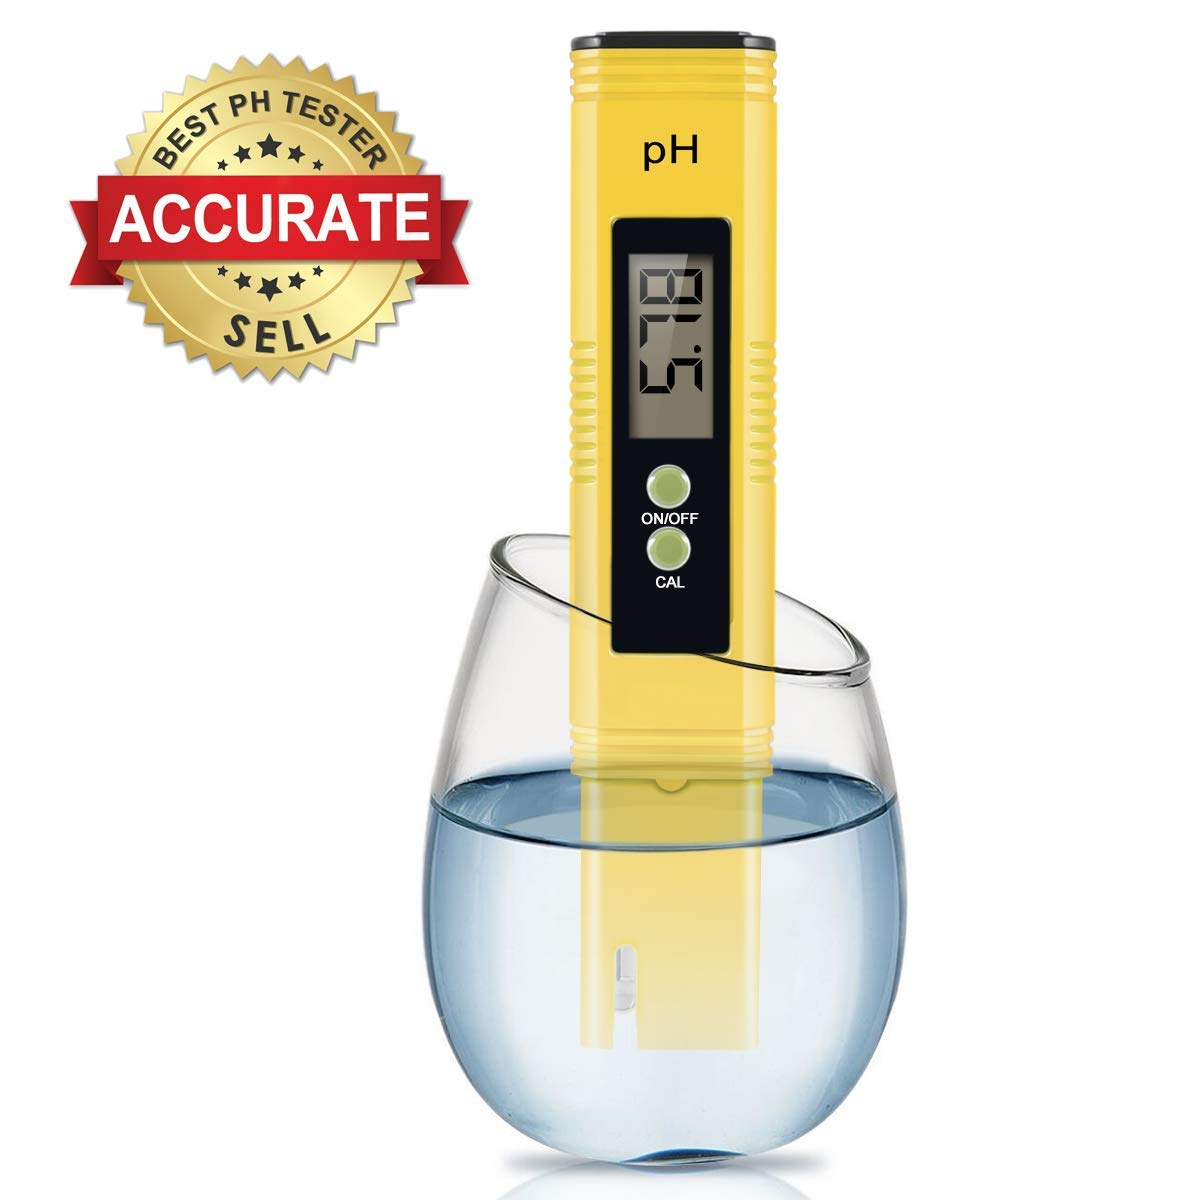 Digital PH Meter, VANTAKOOL PH Meter 0.01 PH High Accuracy Water Quality Tester with 0-14 PH Measurement Range for Household Drinking, Pool and Aquarium Water PH Tester Design with ATC by EternalBe